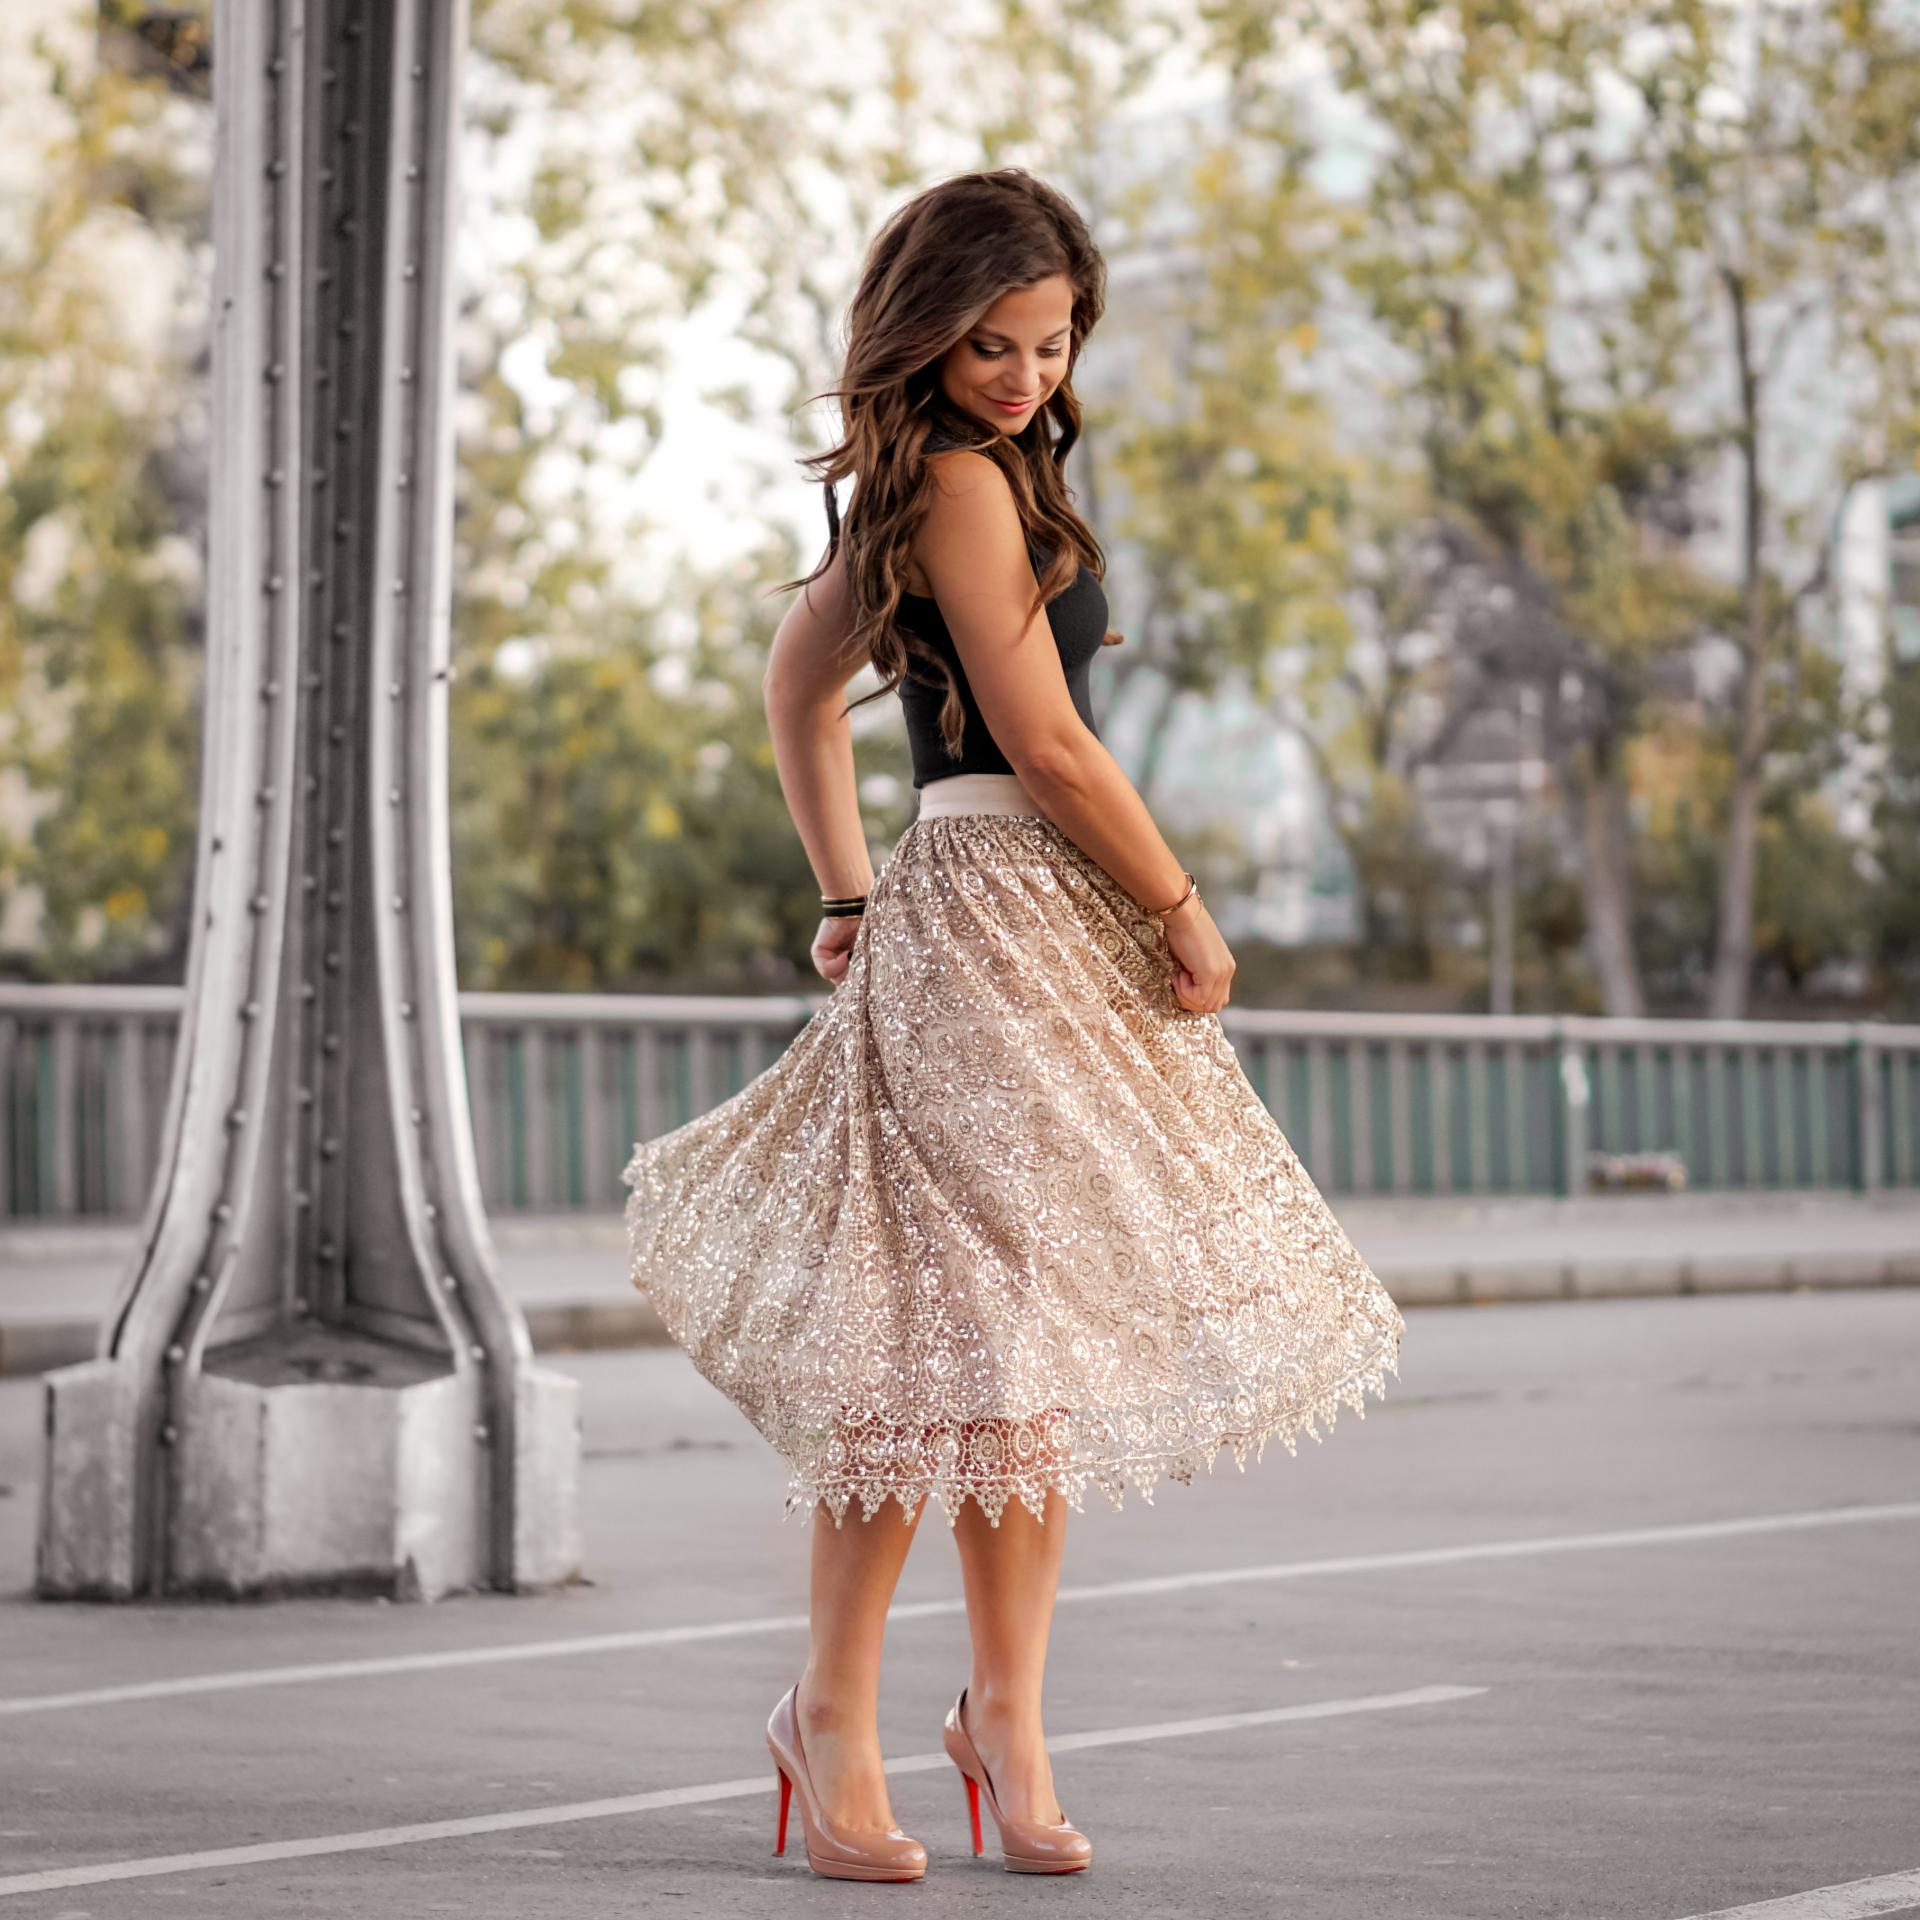 Petite in Paris twirls in Paris France paris fashion blogger